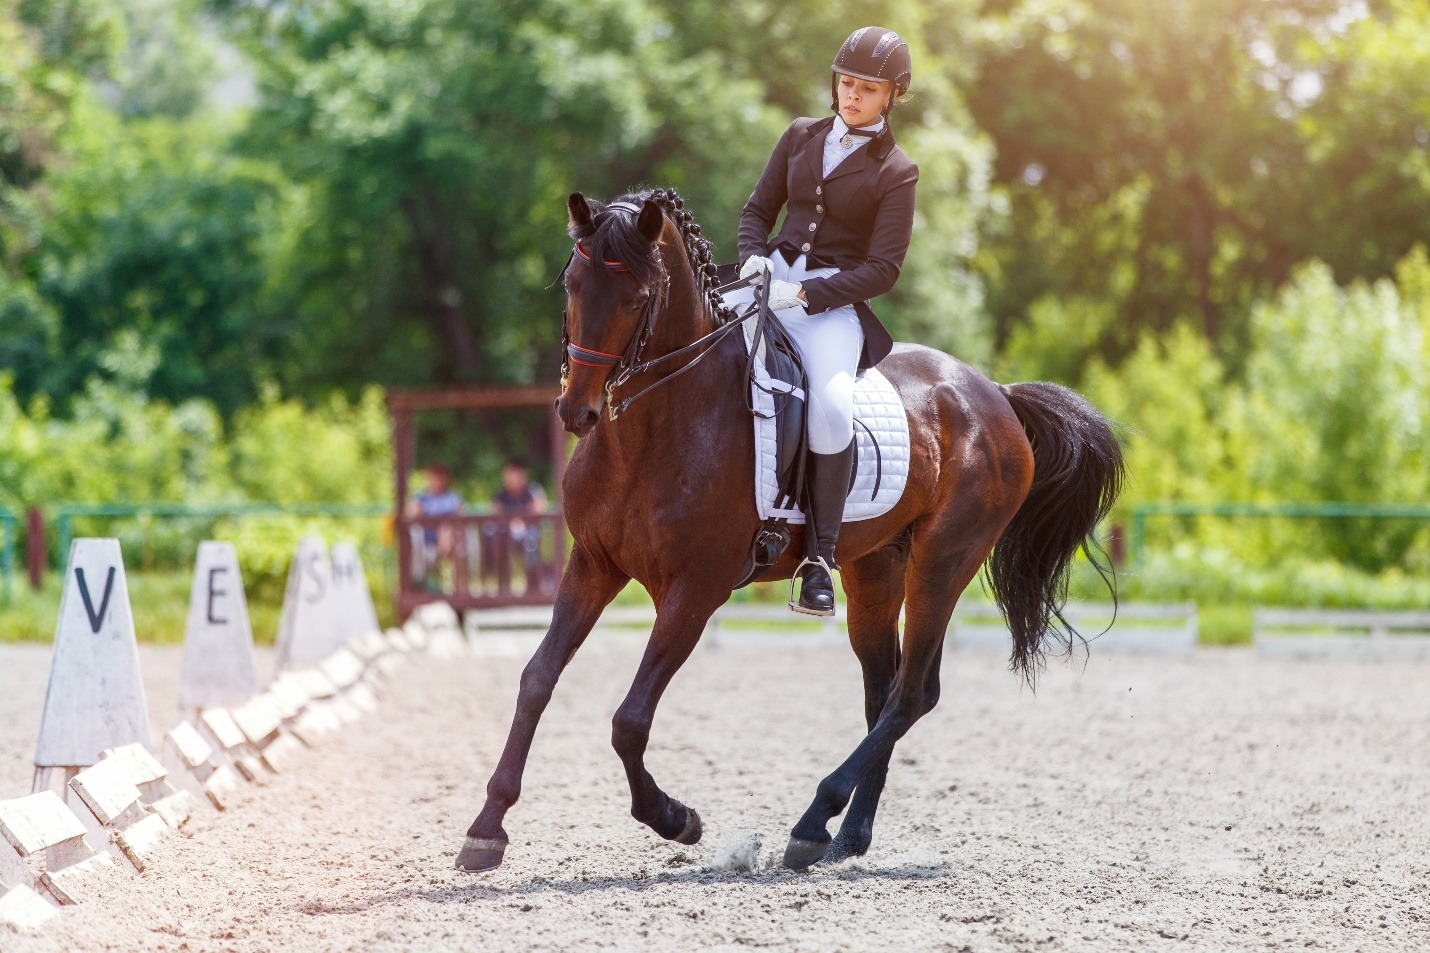 Young woman riding horse on equestriansport competition